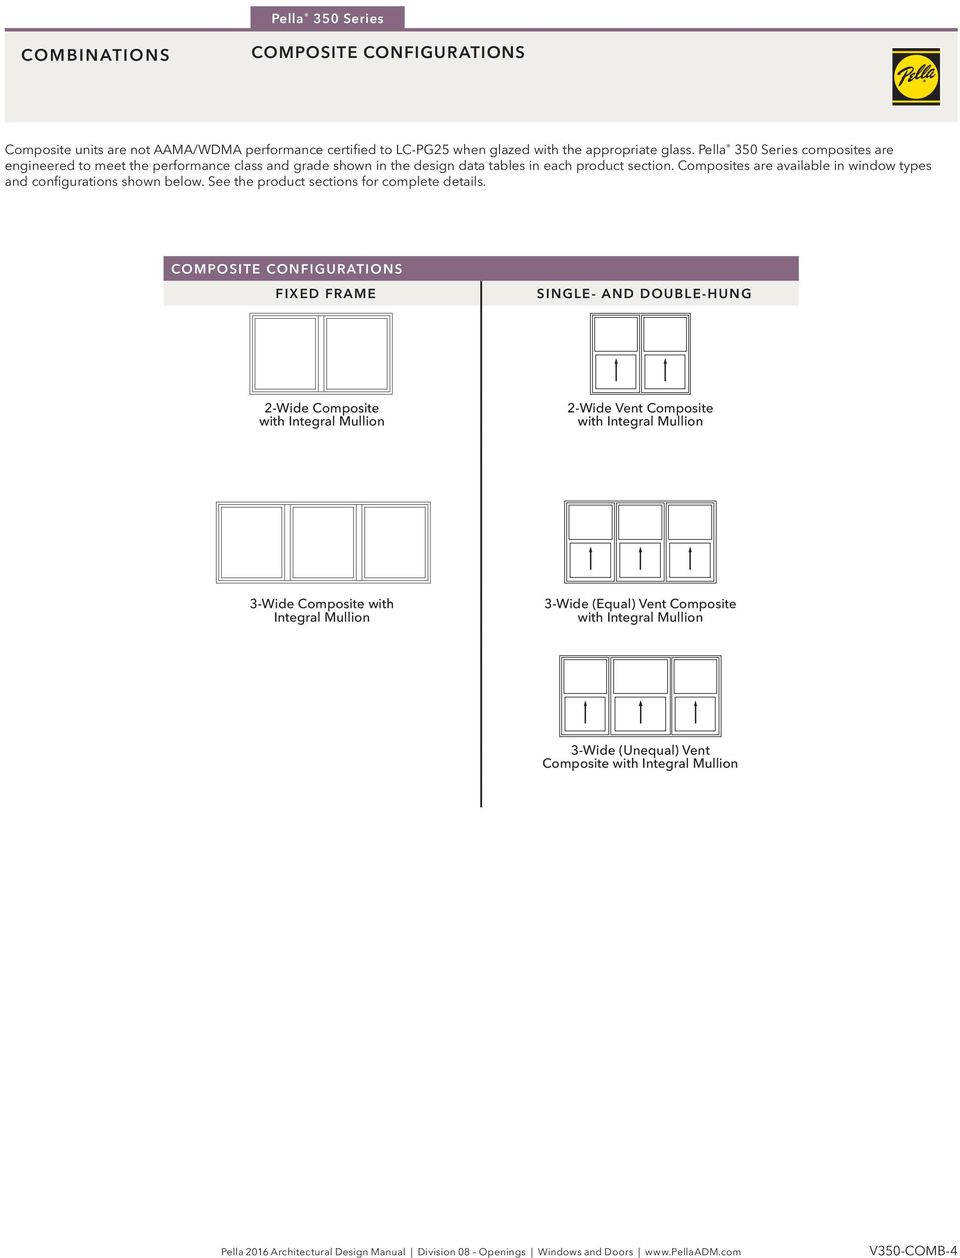 Composites are available in window types and configurations shown below. See the product sections for complete details.